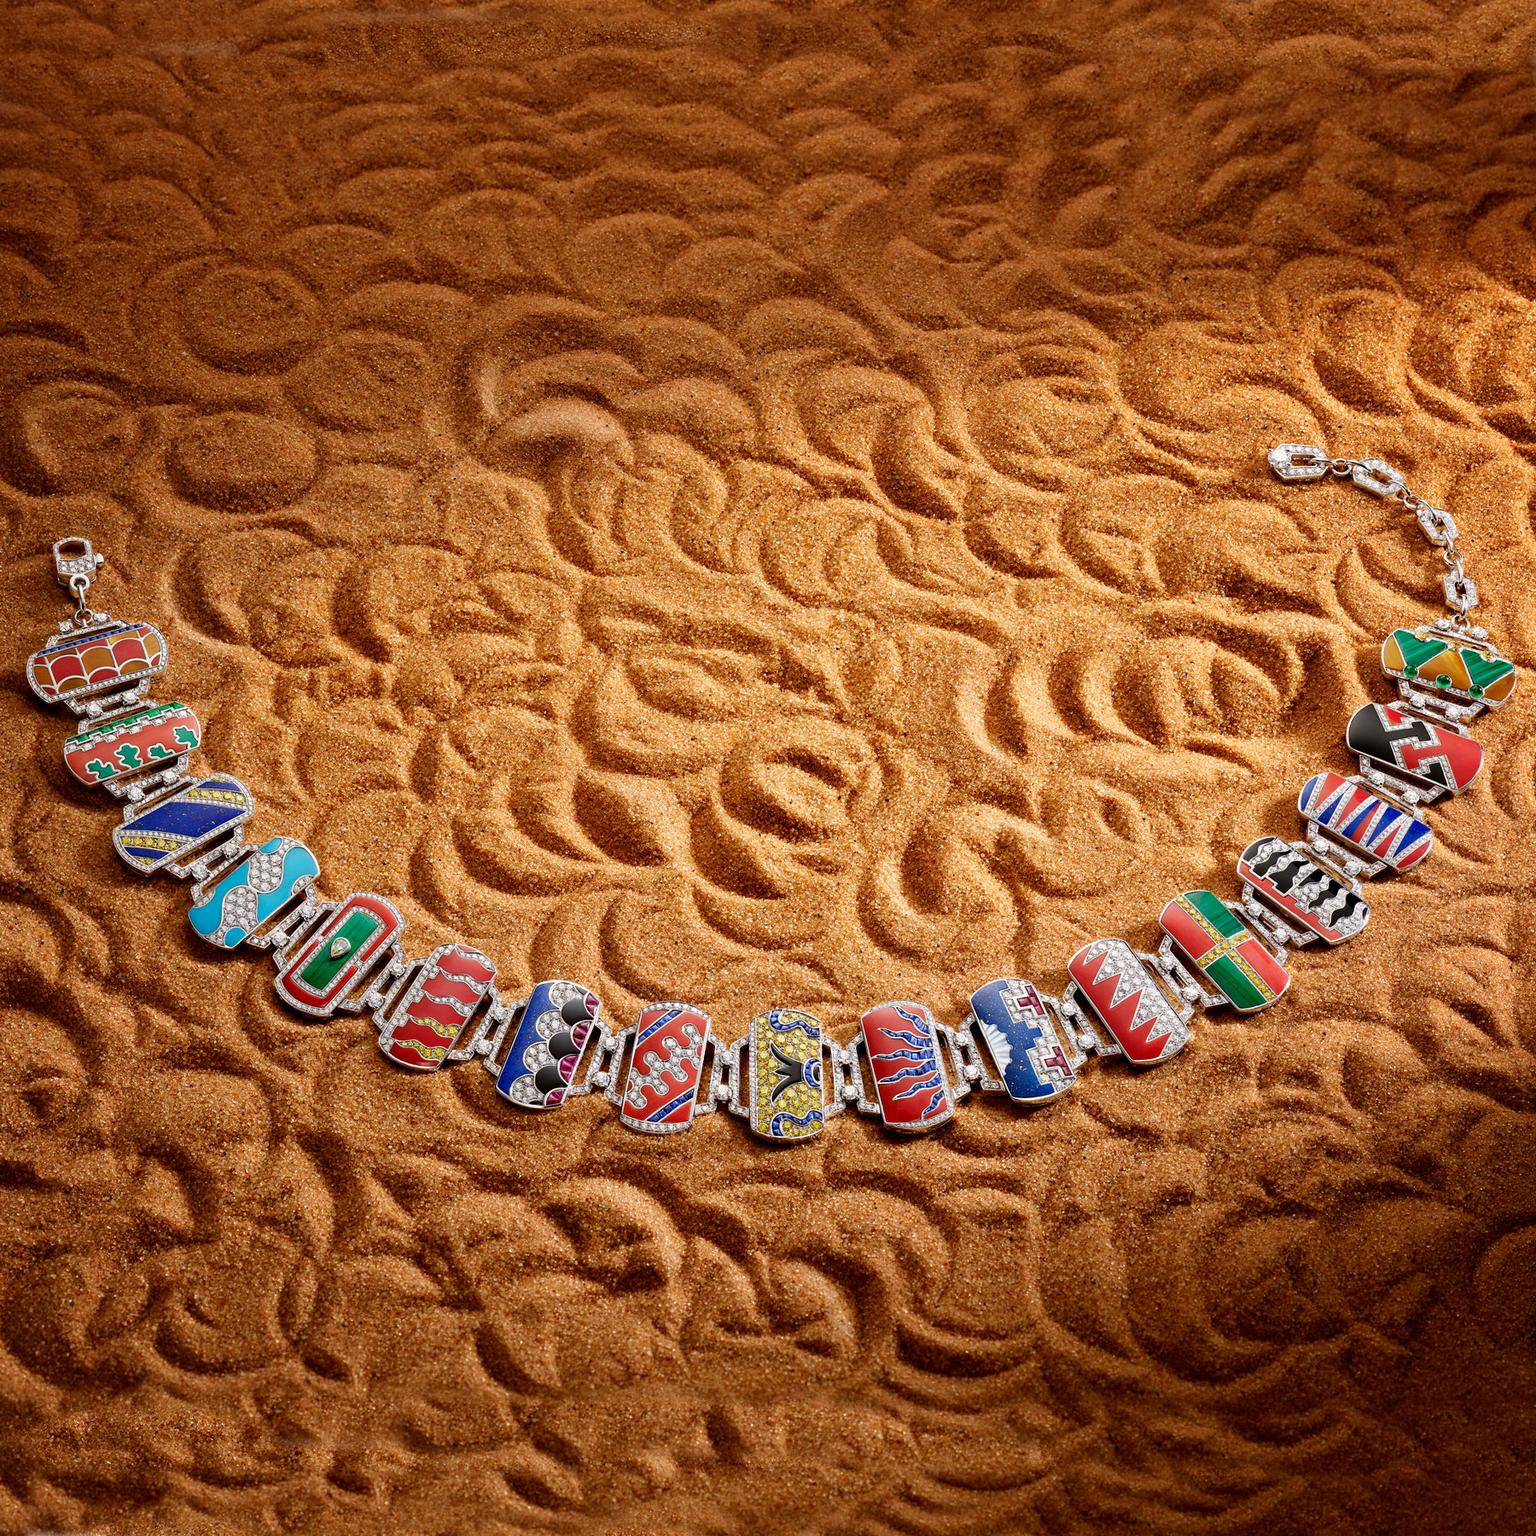 Bulgari Festa Palio stone marquetry high jewellery necklace